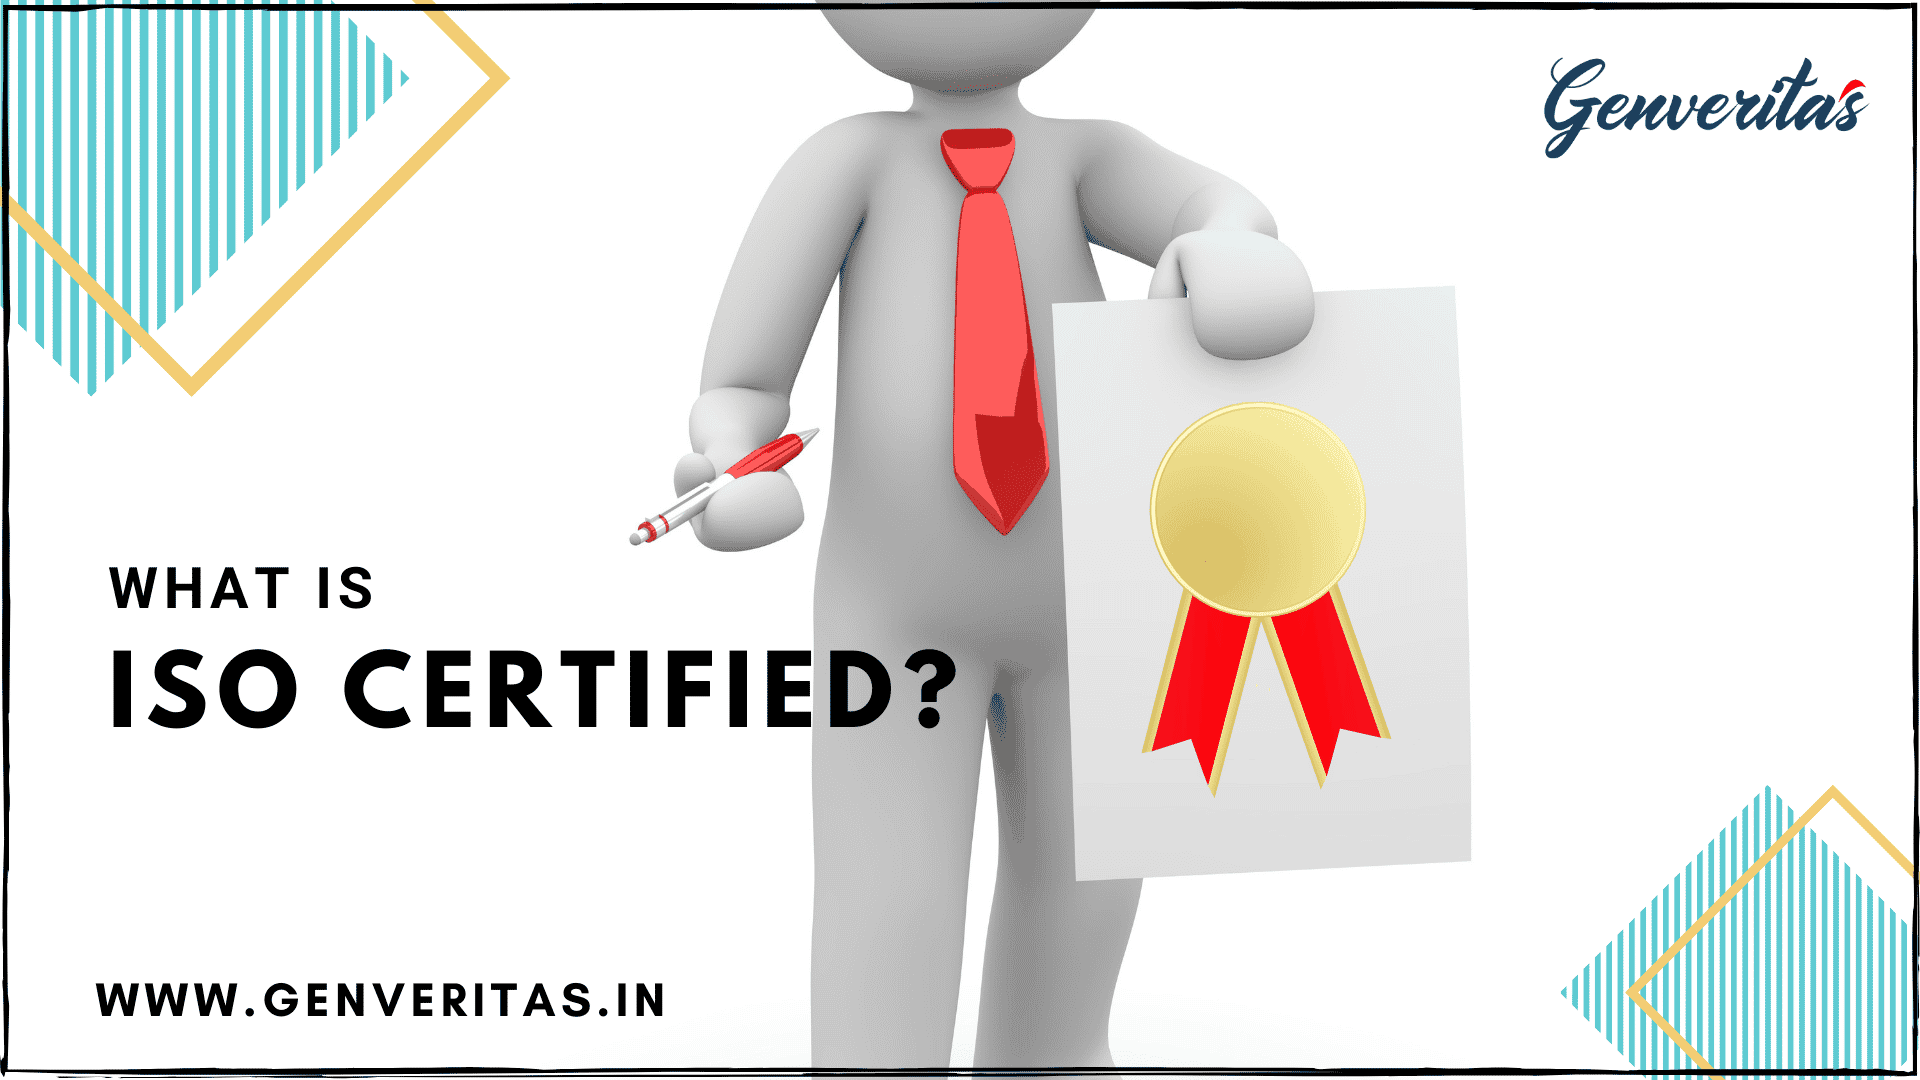 What is ISO Certified?